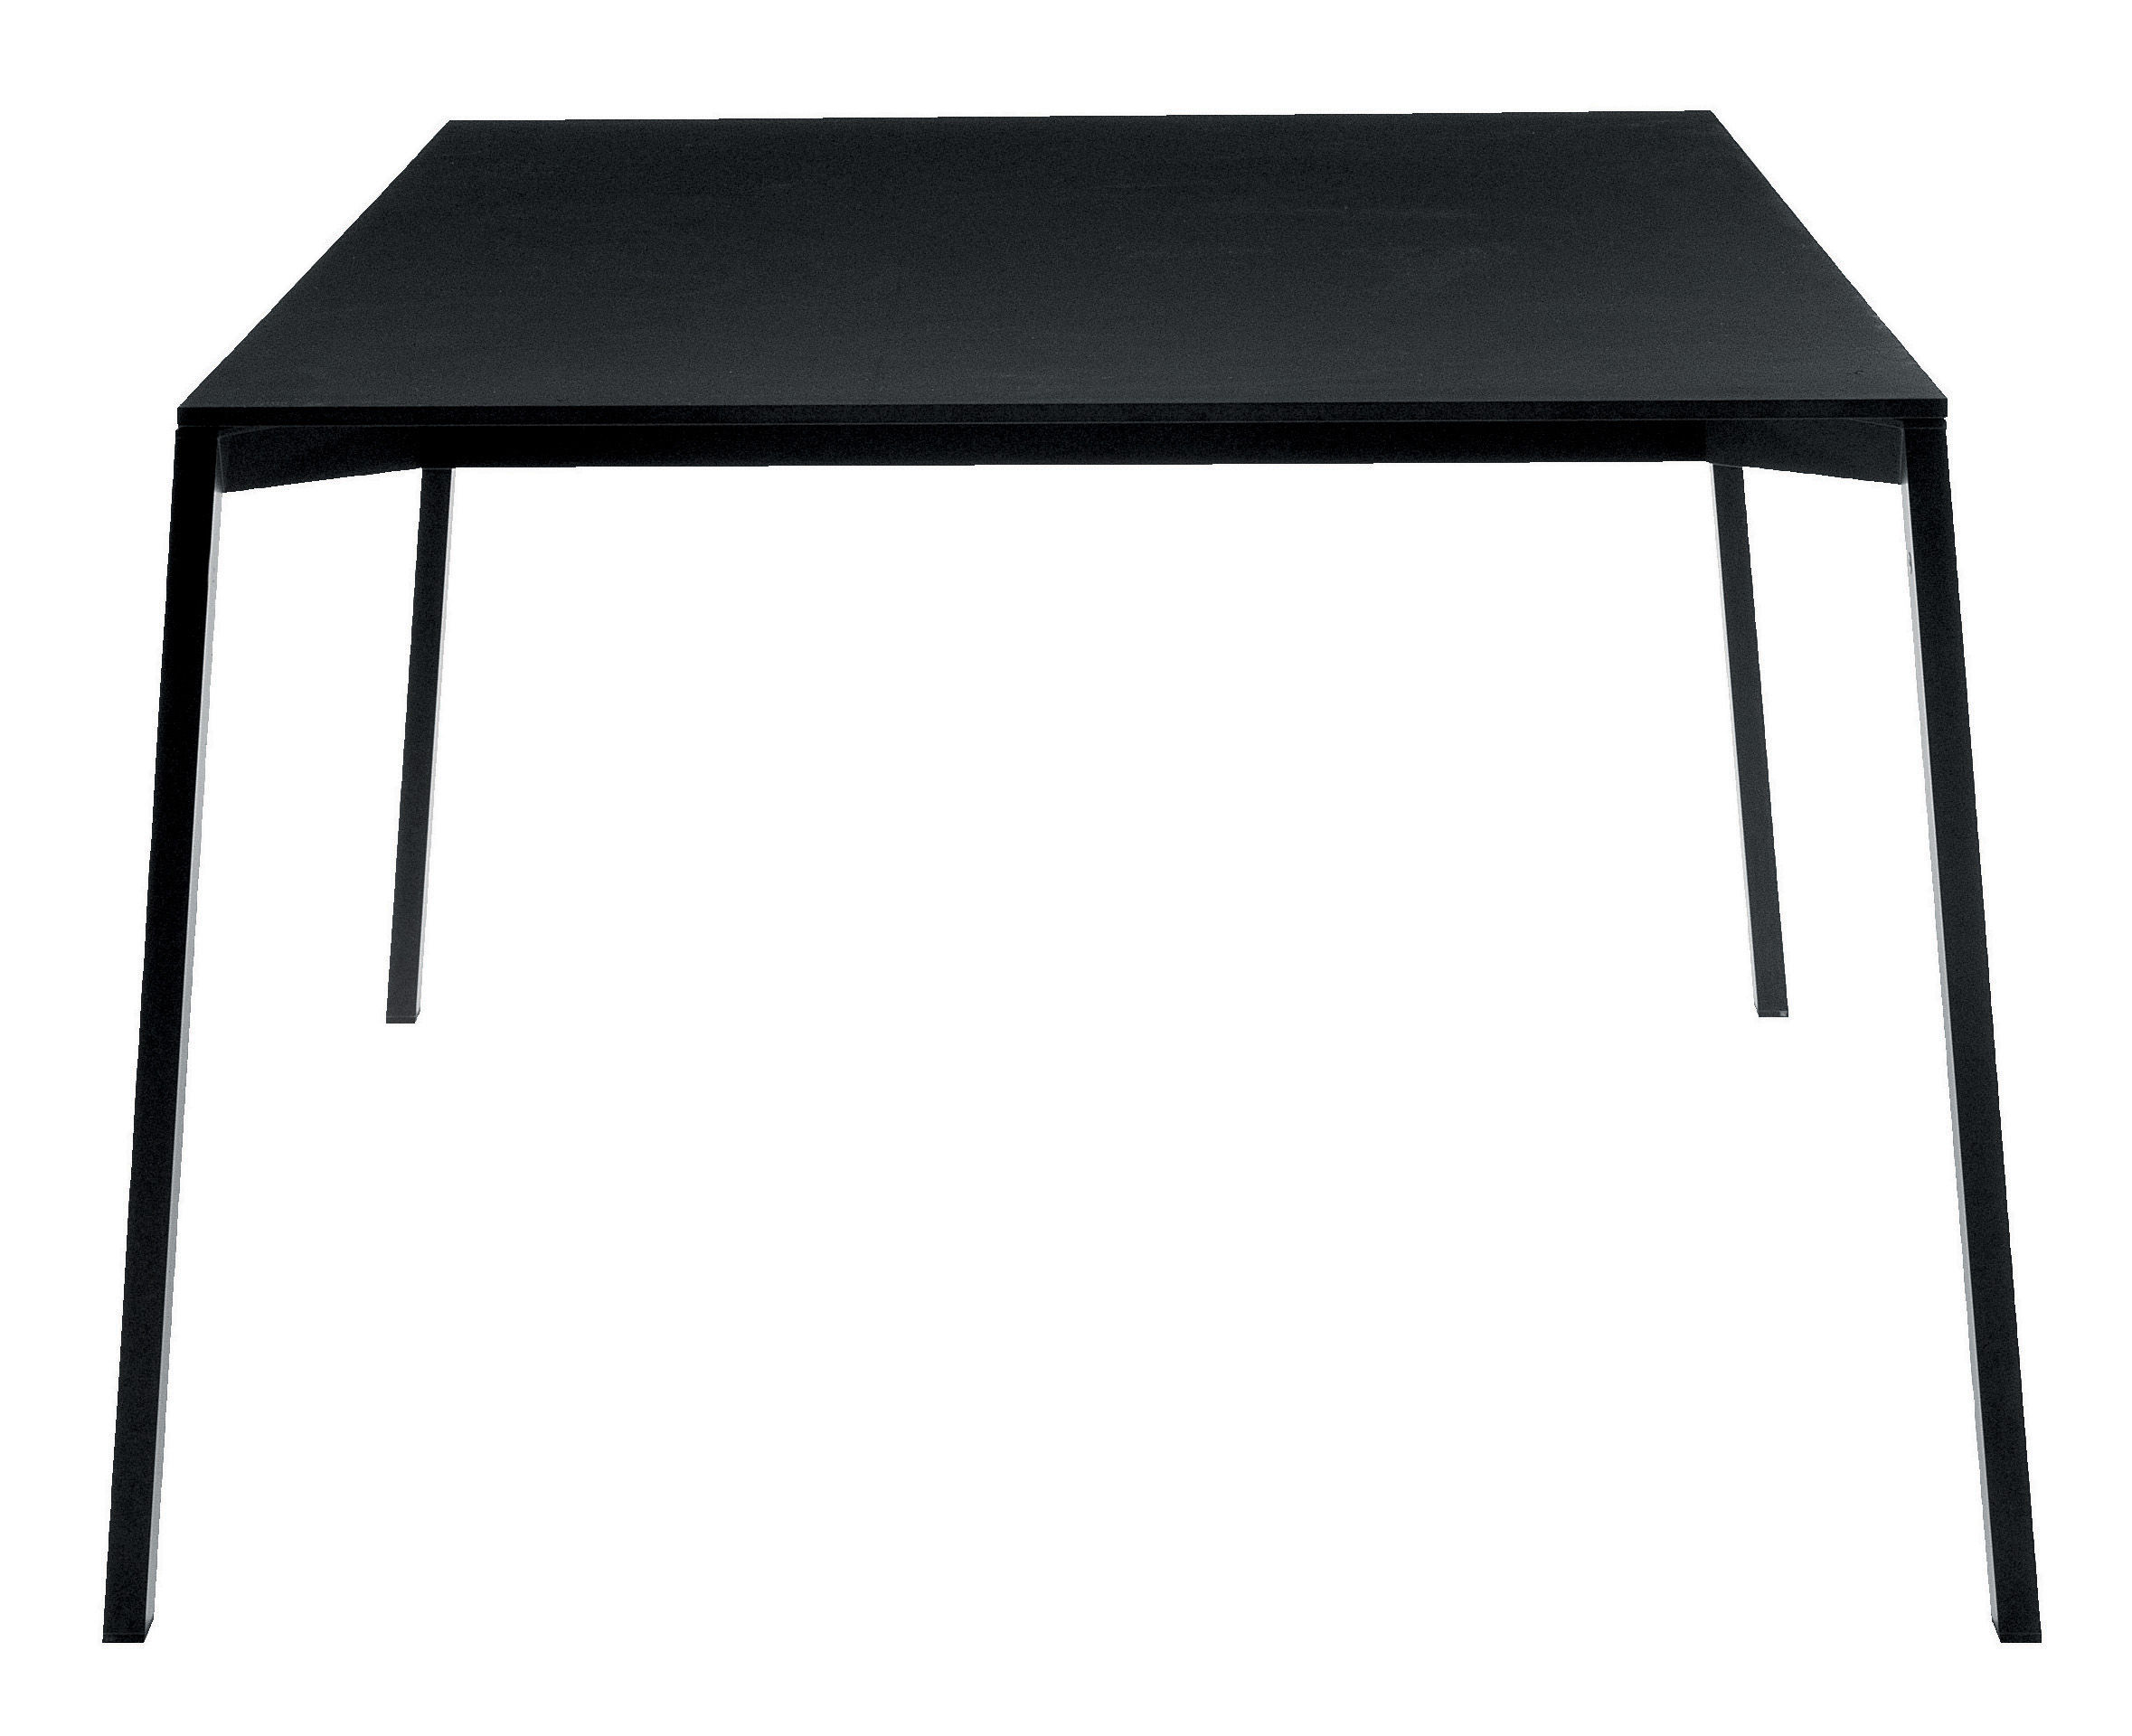 Outdoor - Garden Tables - One Rectangular table - Black by Magis - Black - 160 x 110 cm - HPL, Varnished aluminium